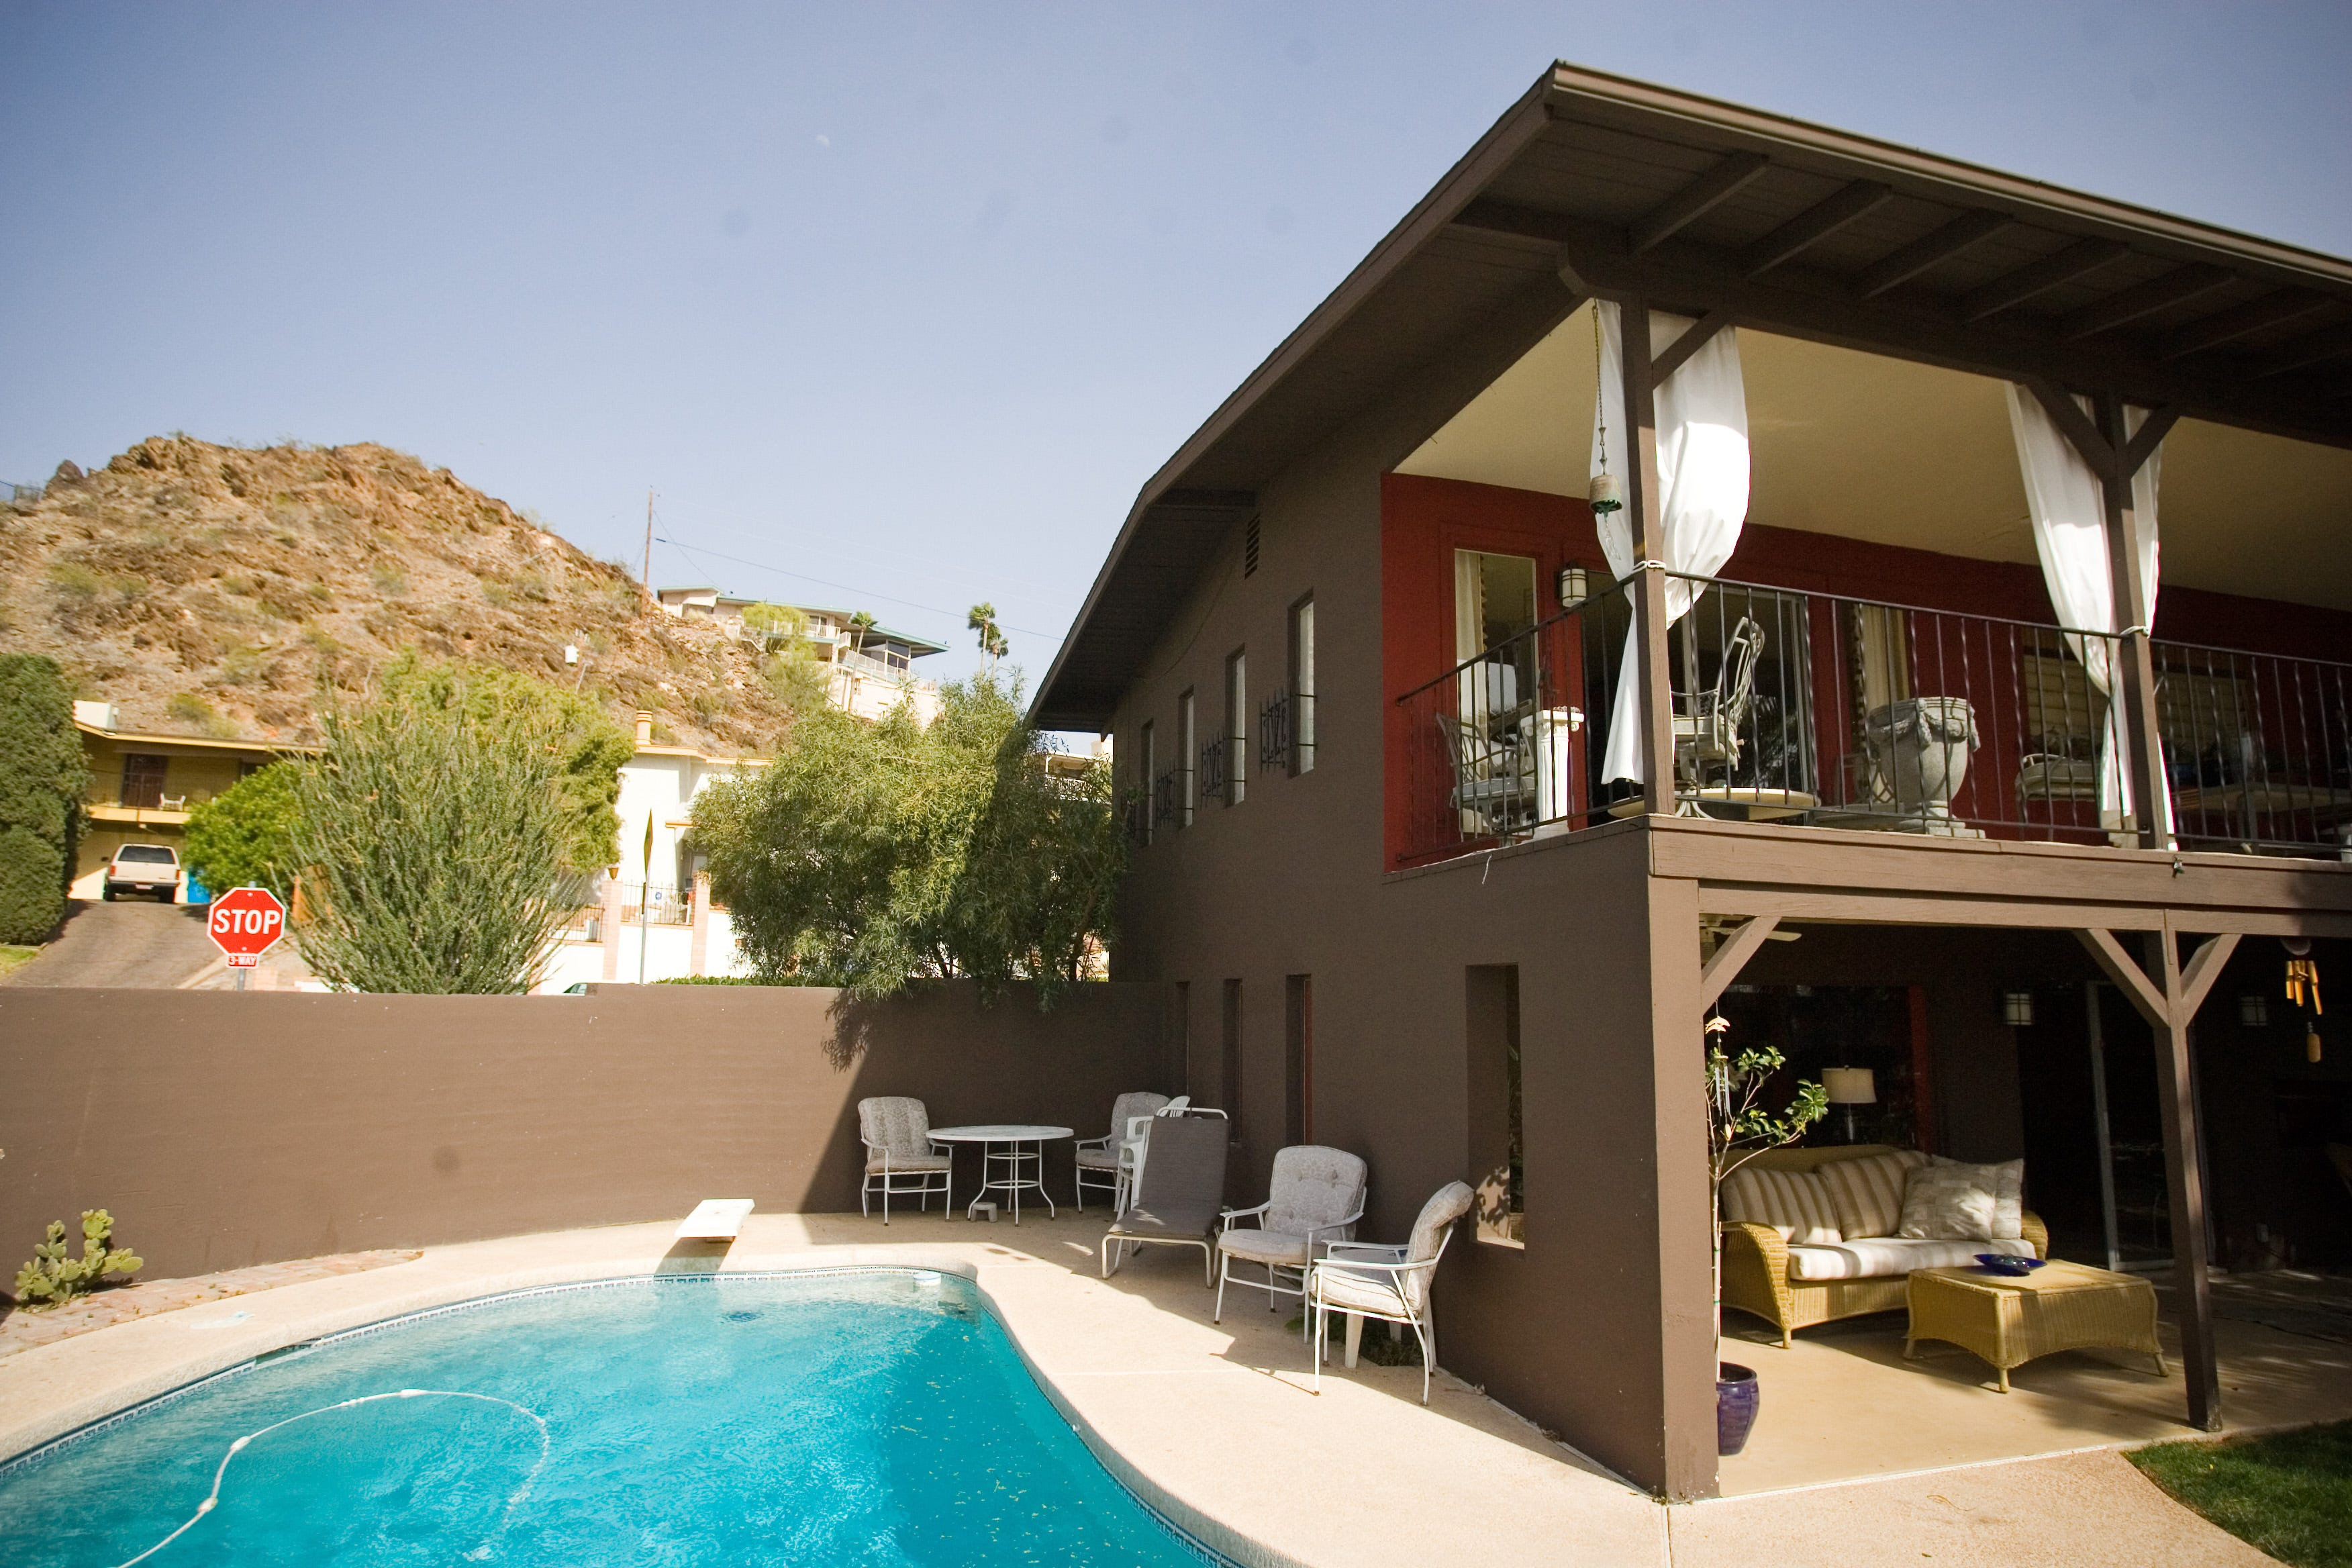 http://www.azcentral.com/picture-gallery/life/house-garden/cool-home ...